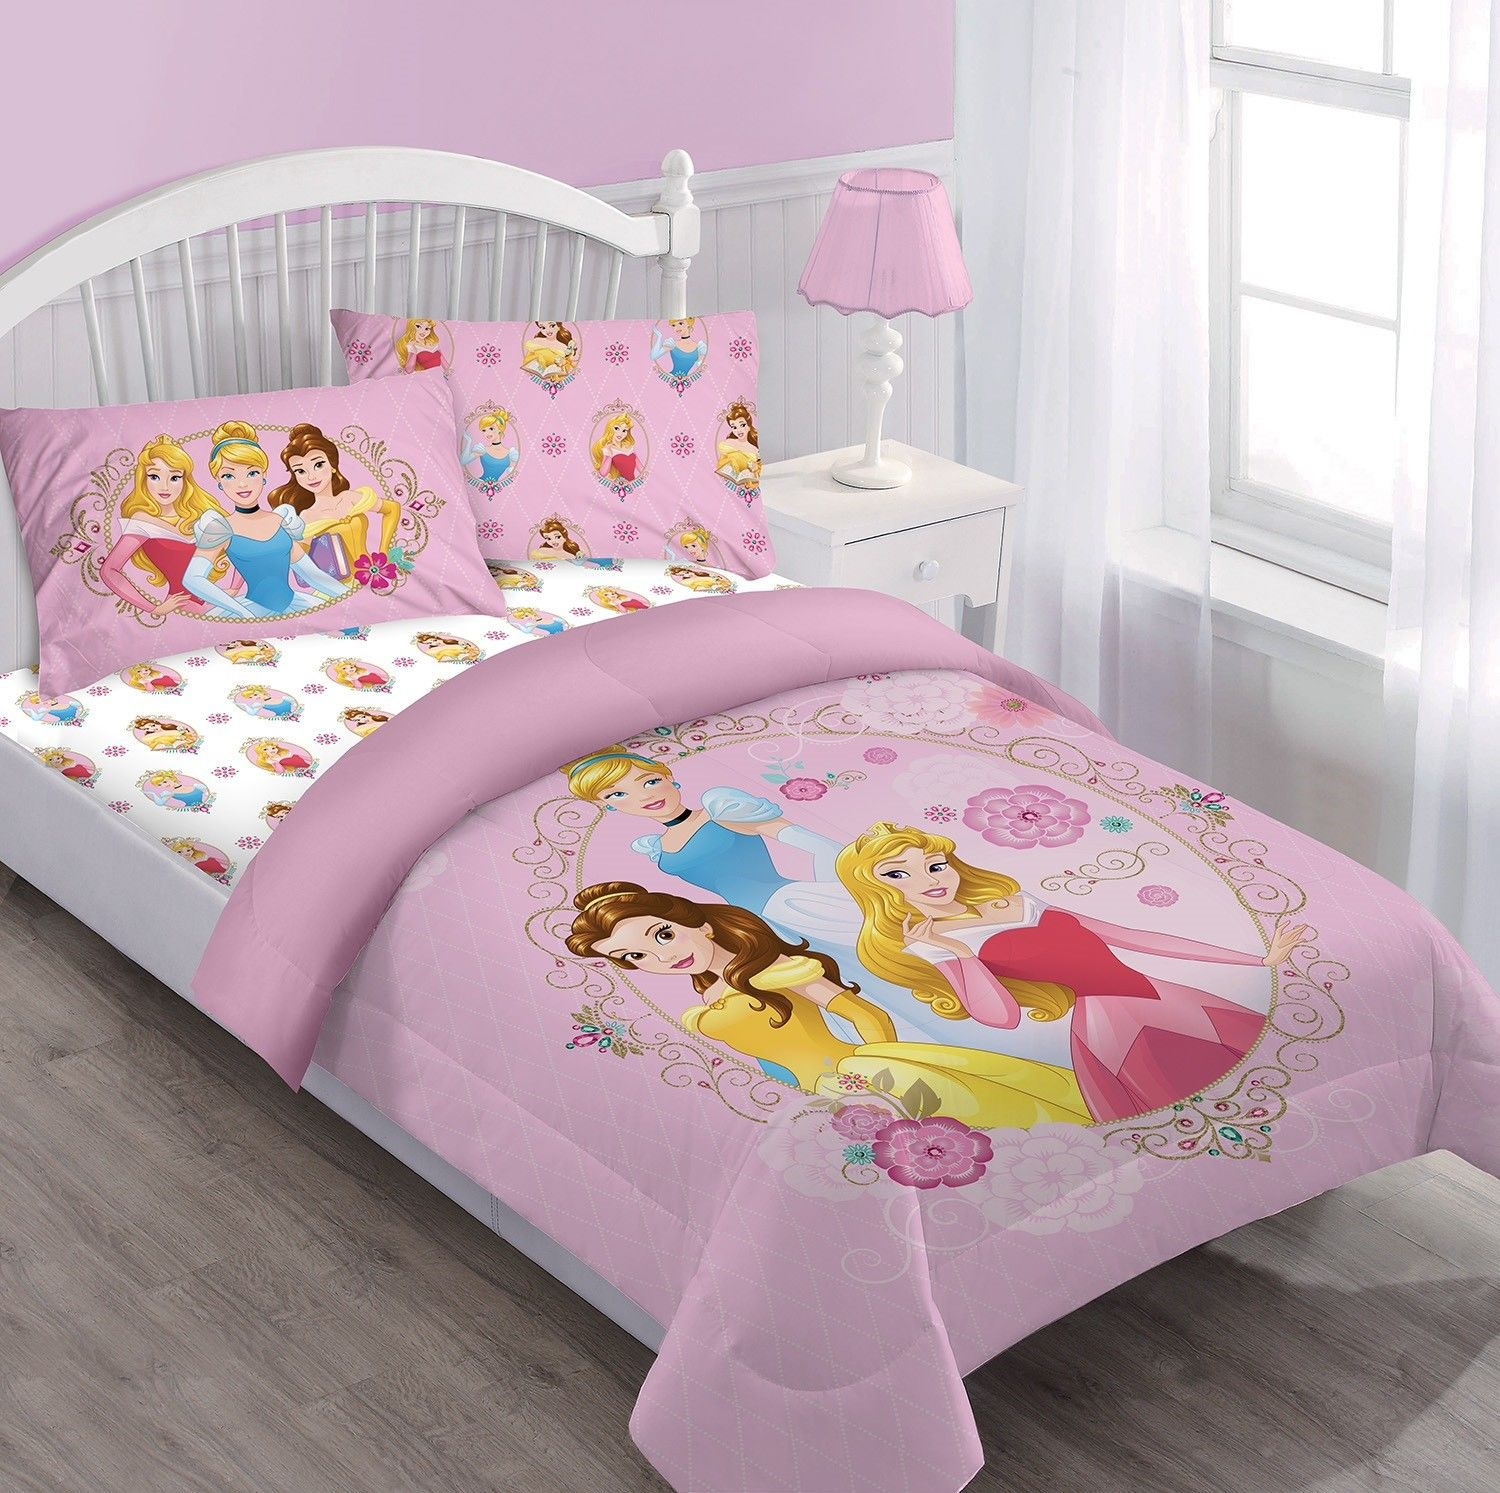 Disney 3pc PRINCESS Courage Dear Heart Bedding Set, Licensed Twin Comforter W/Fitted Sheet And Pillowcase